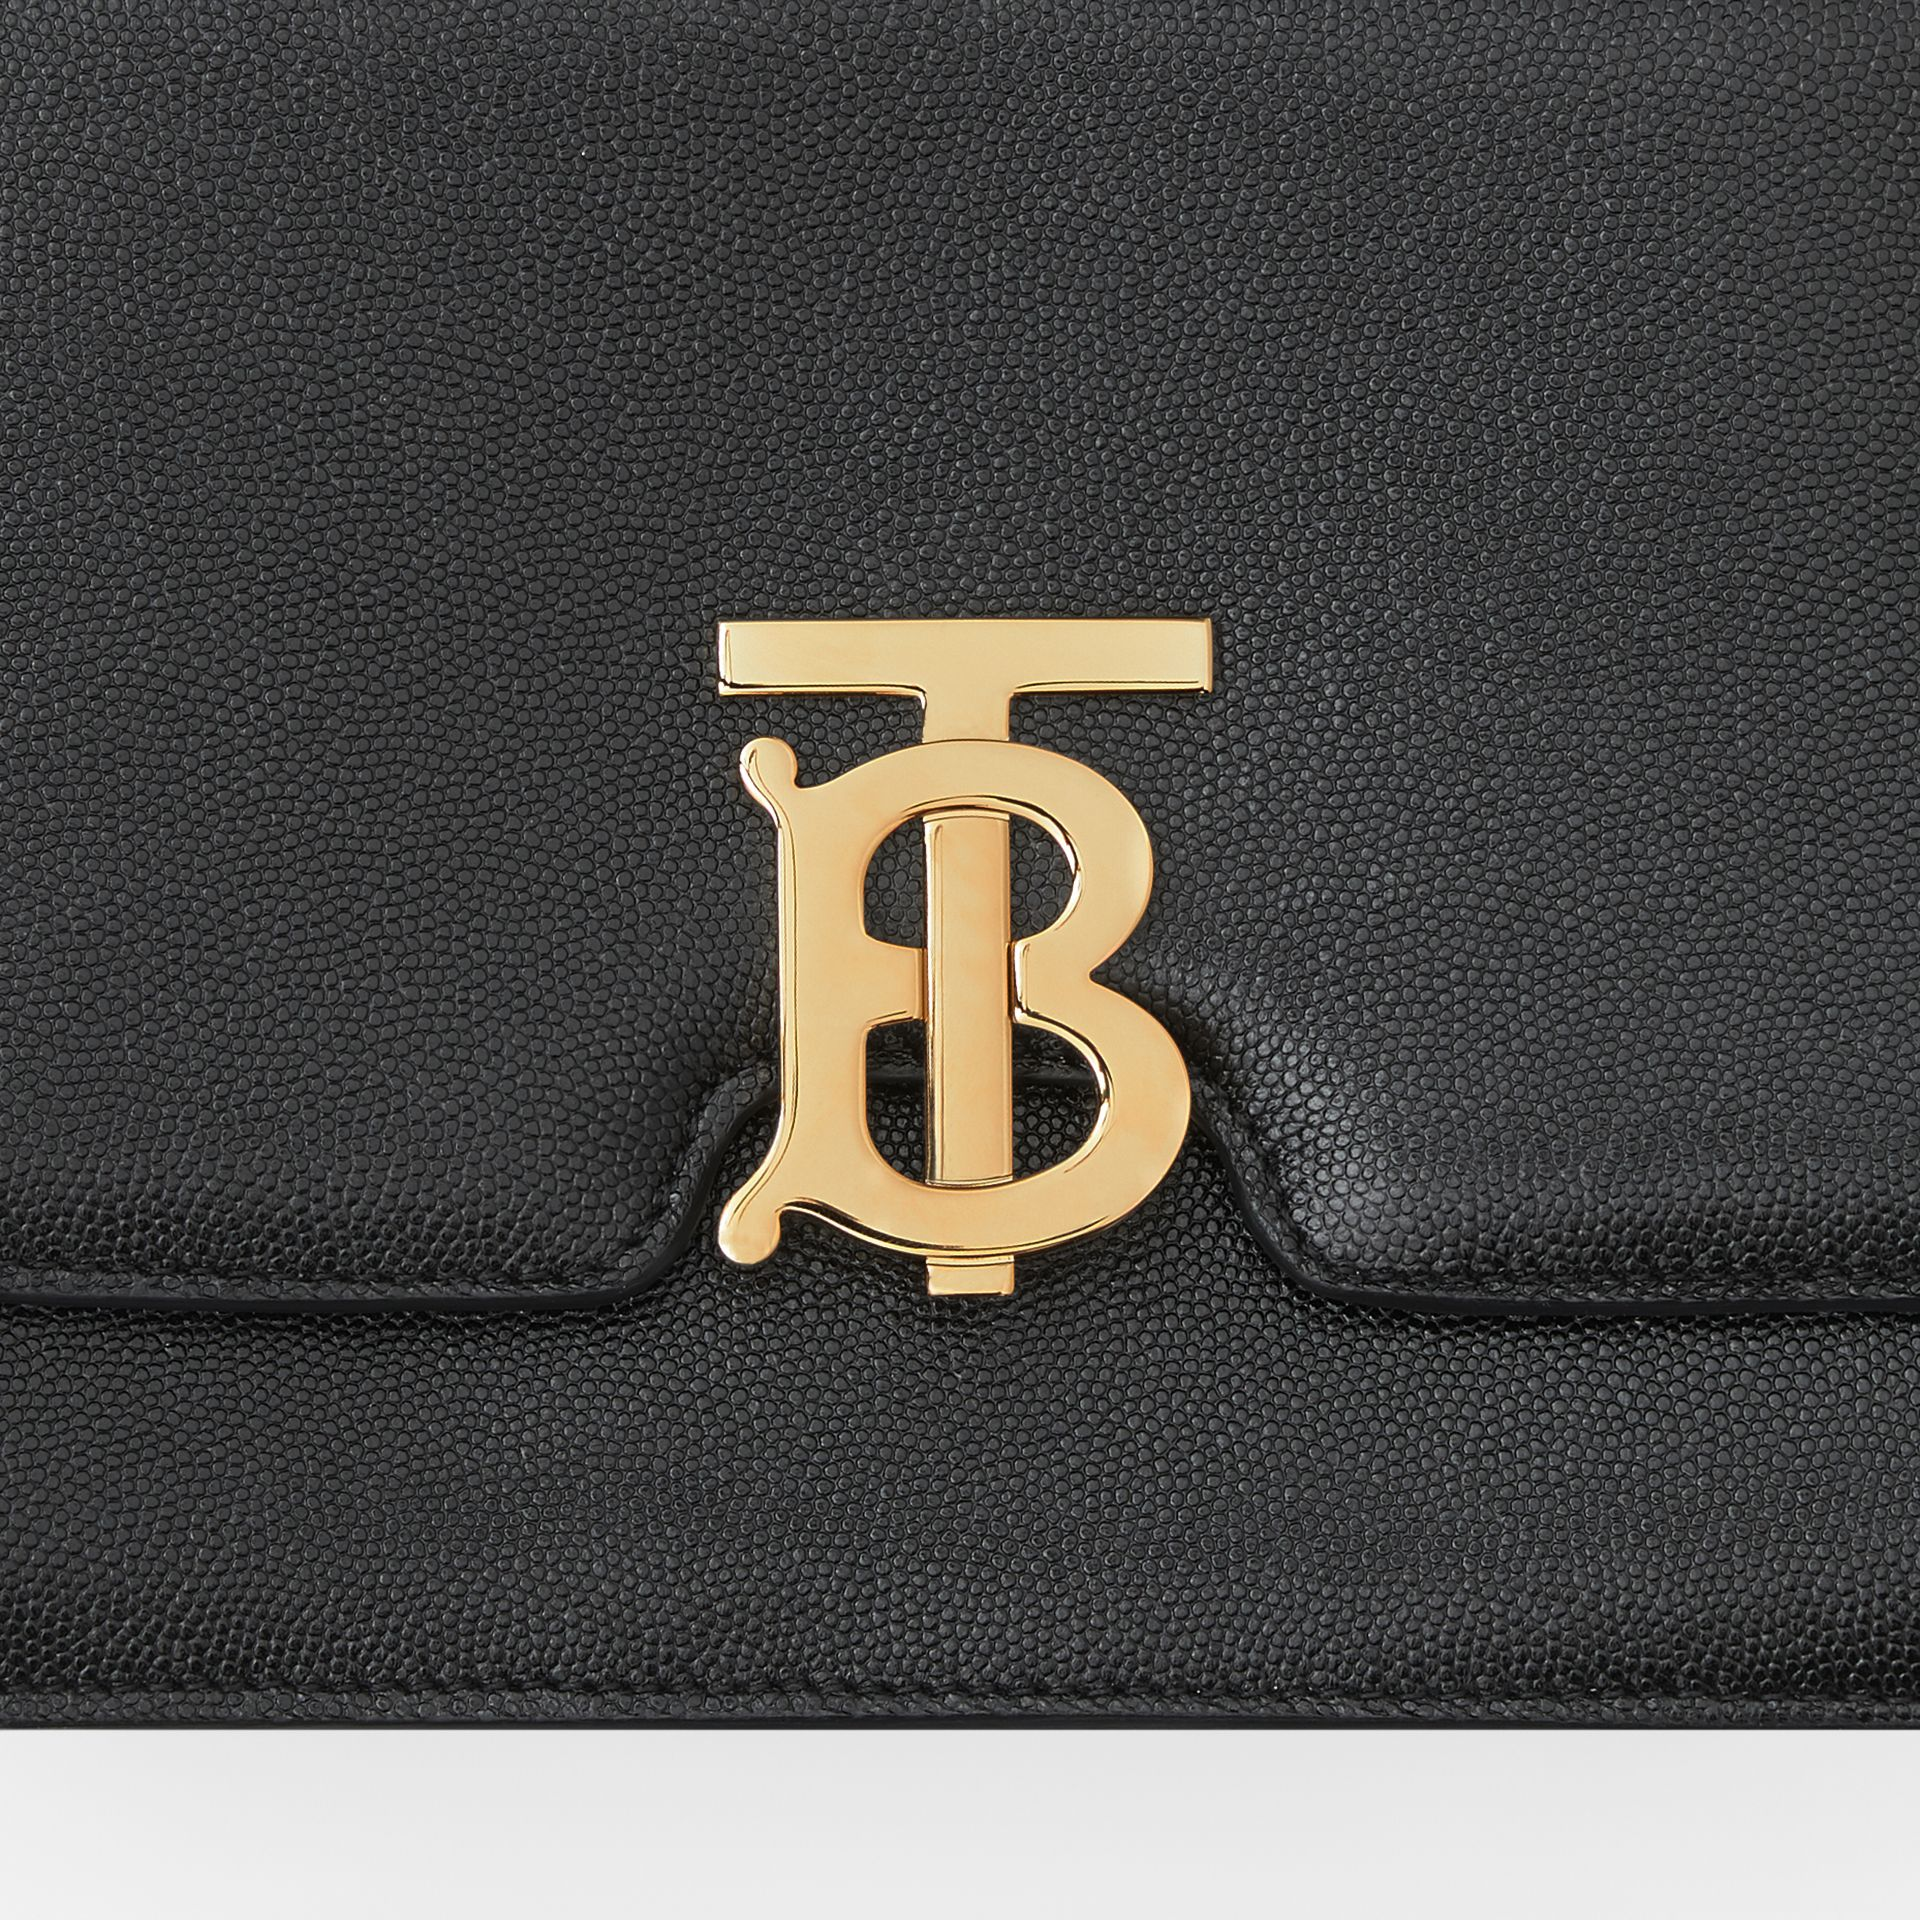 Medium Grainy Leather TB Bag in Black - Women | Burberry United Kingdom - gallery image 1